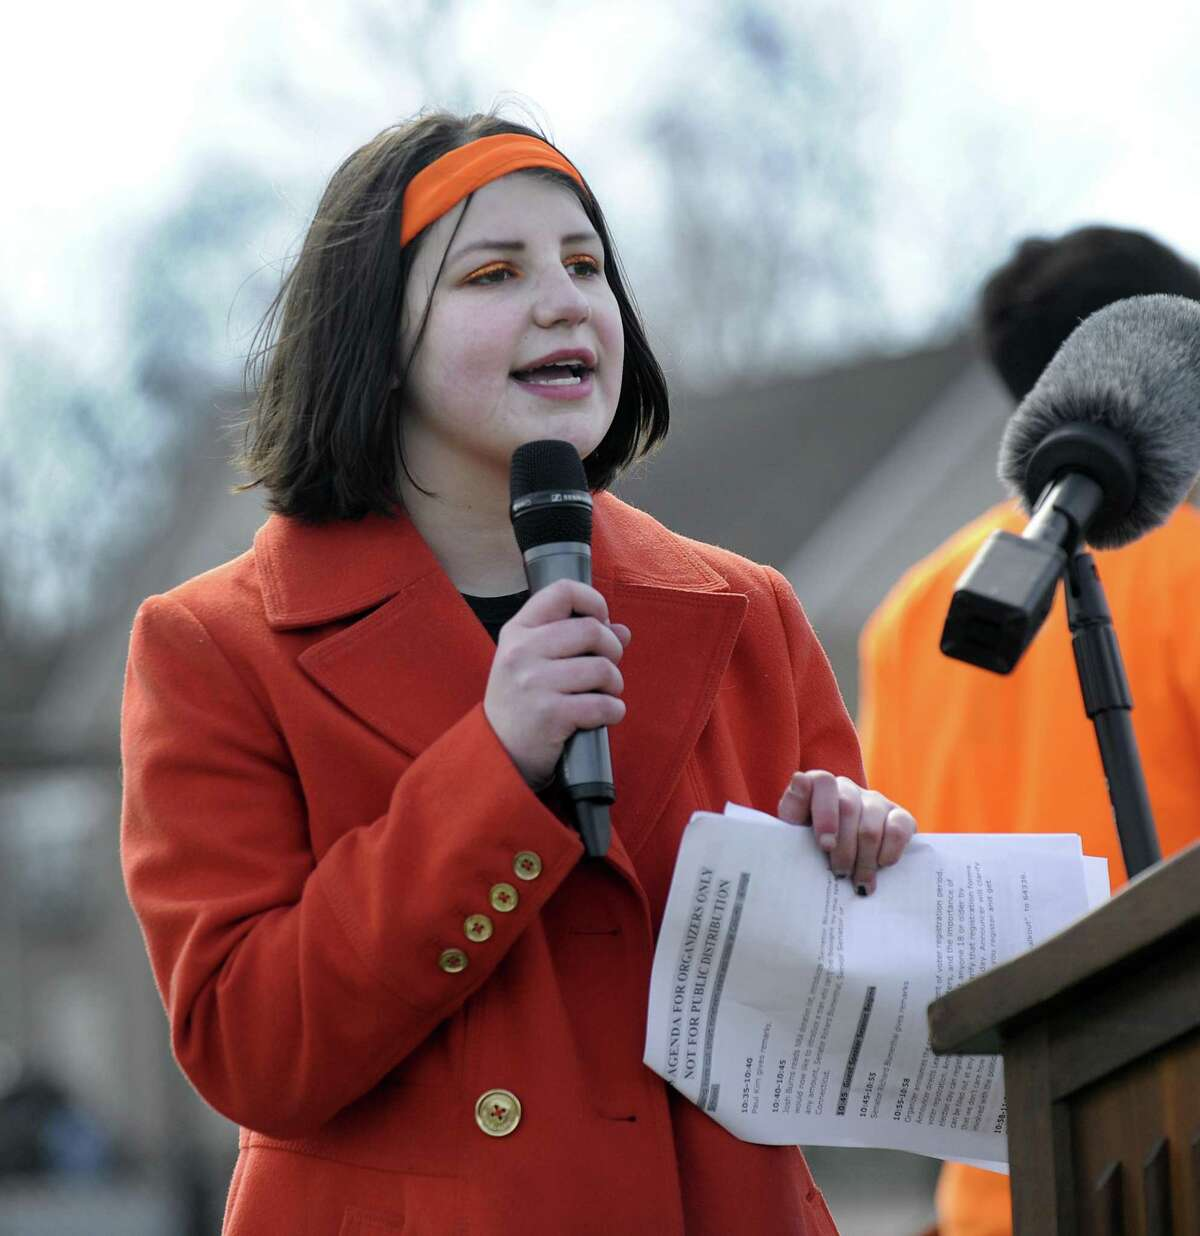 Lane Murdock, 16, a Ridgefield High School student and the founder of The National School Walkout, speaks at the Riddgefiel High School event on April 20, 2018.